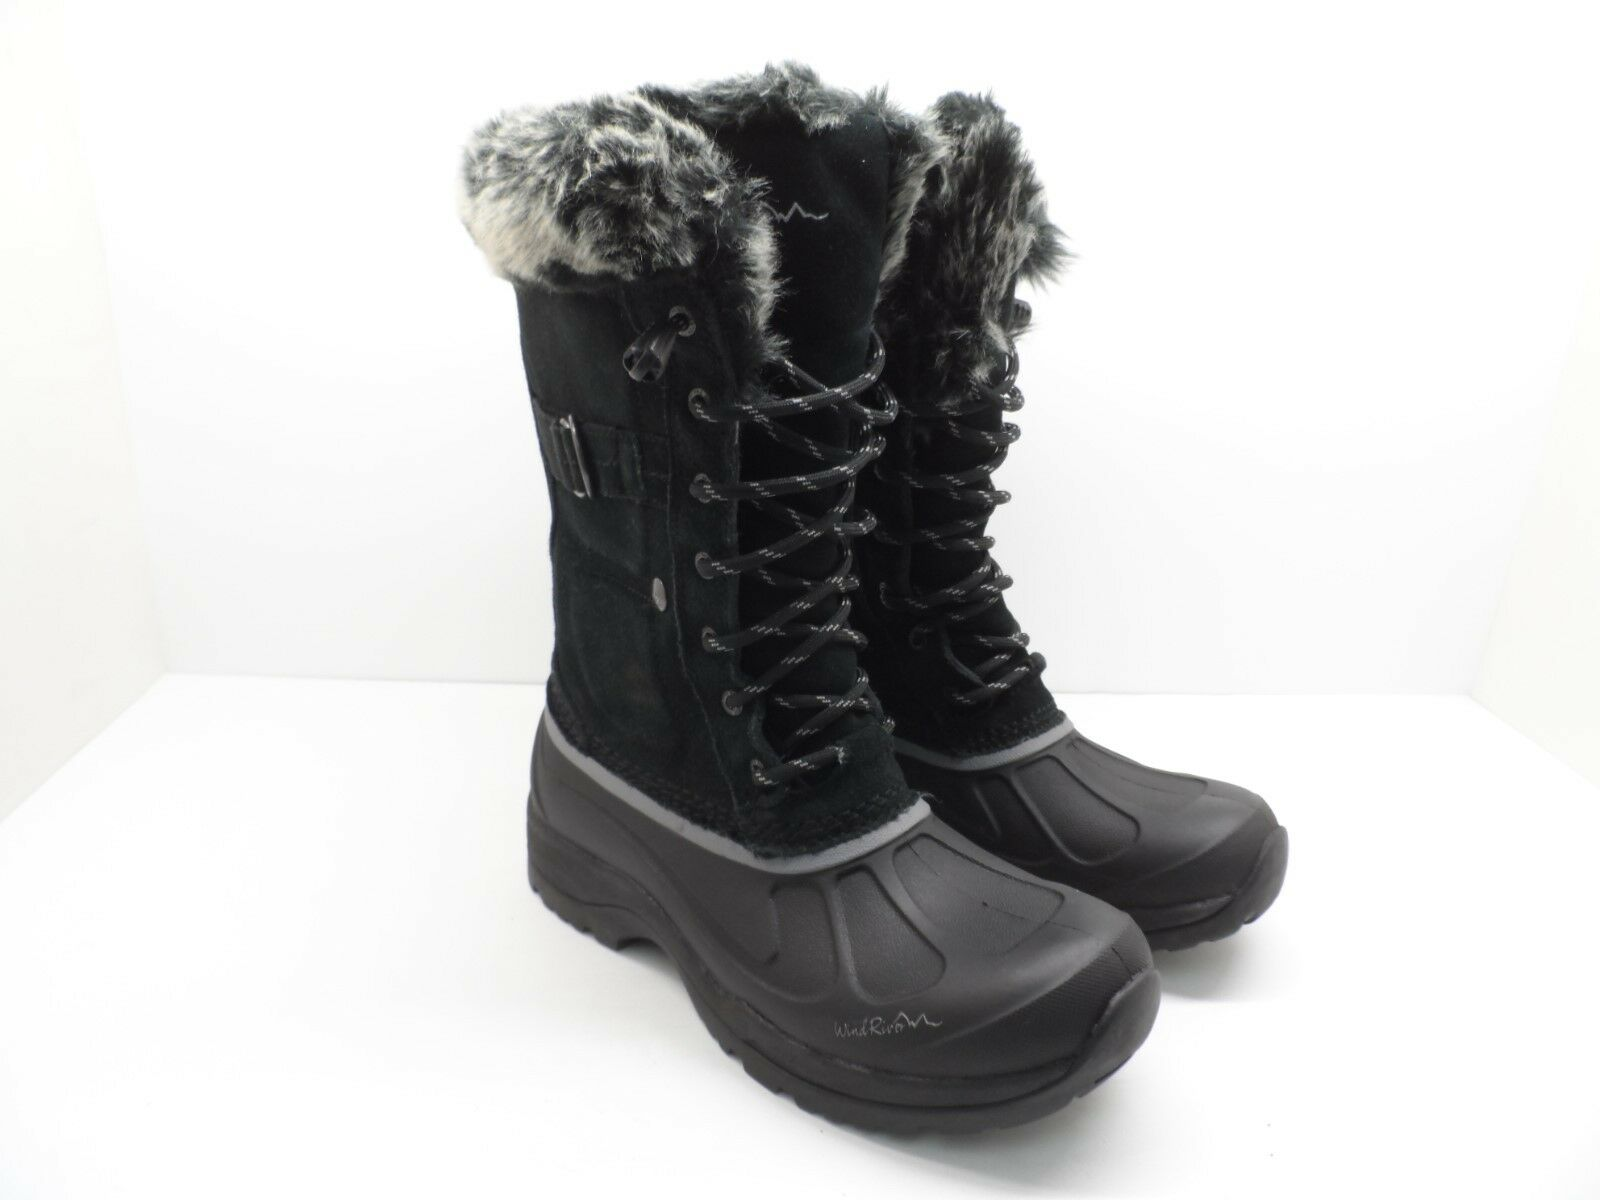 WindRiver Women's Snowdrift HD2 Water-Resistant Shell Winter Boot Black Size 8M